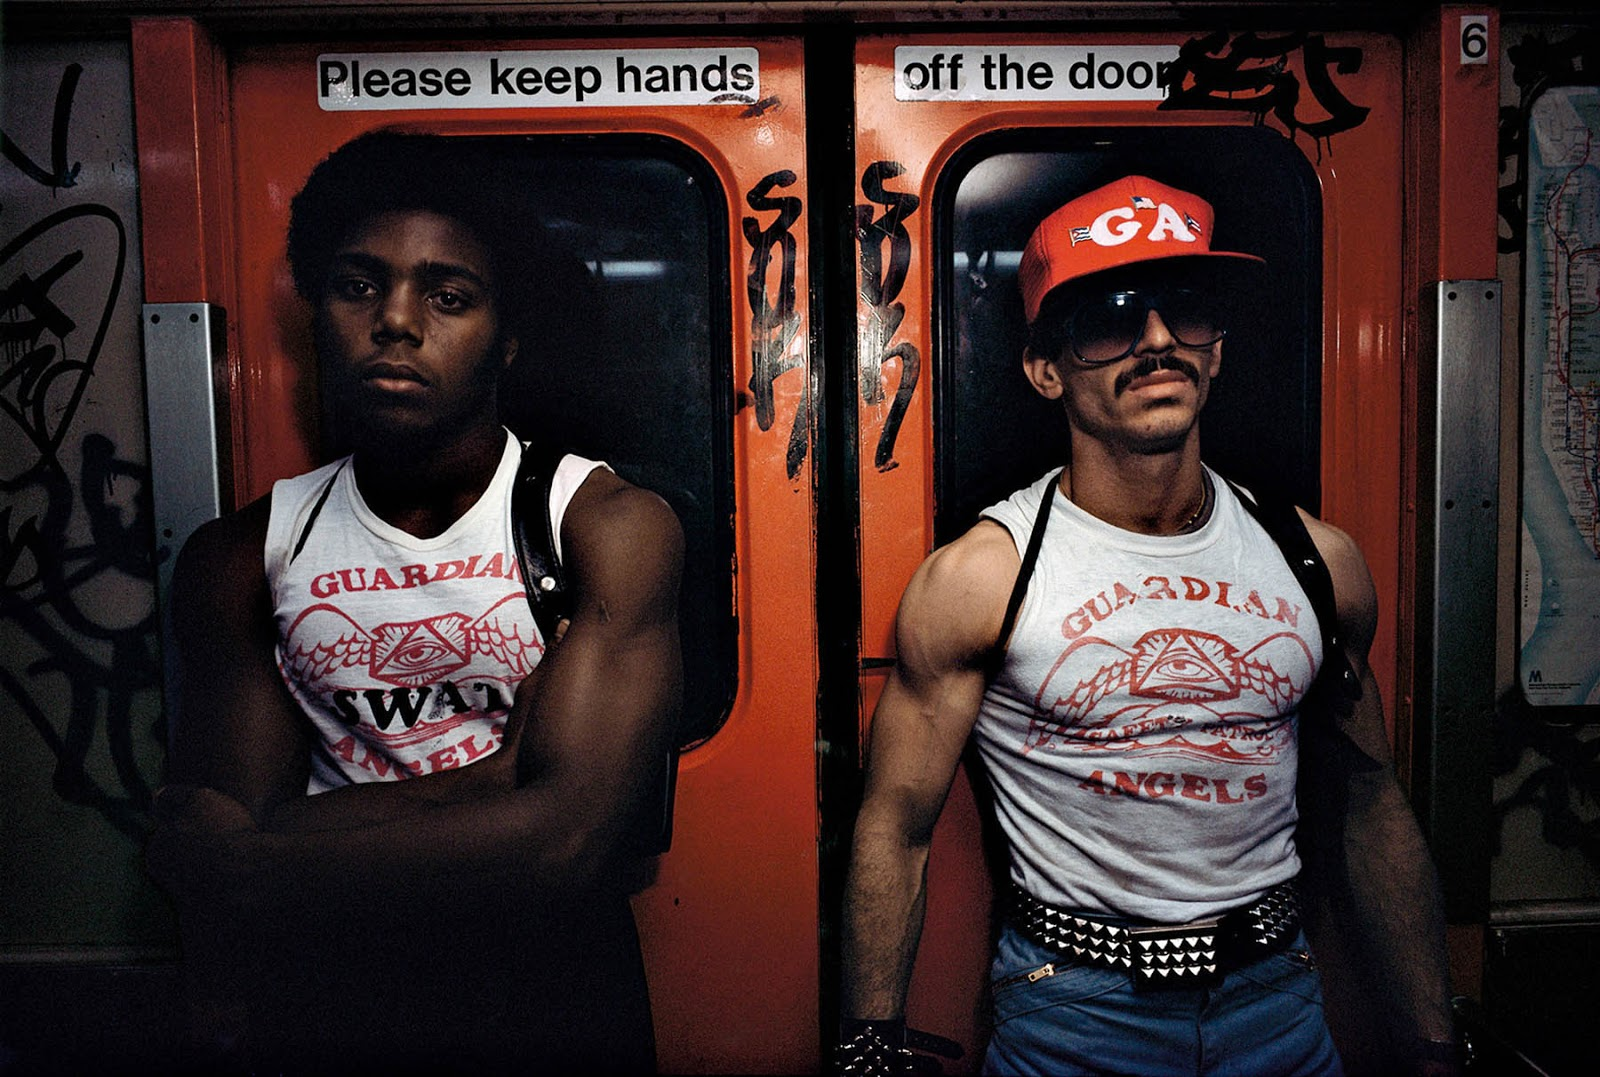 Guardian Angels on the New York City subway, 1980